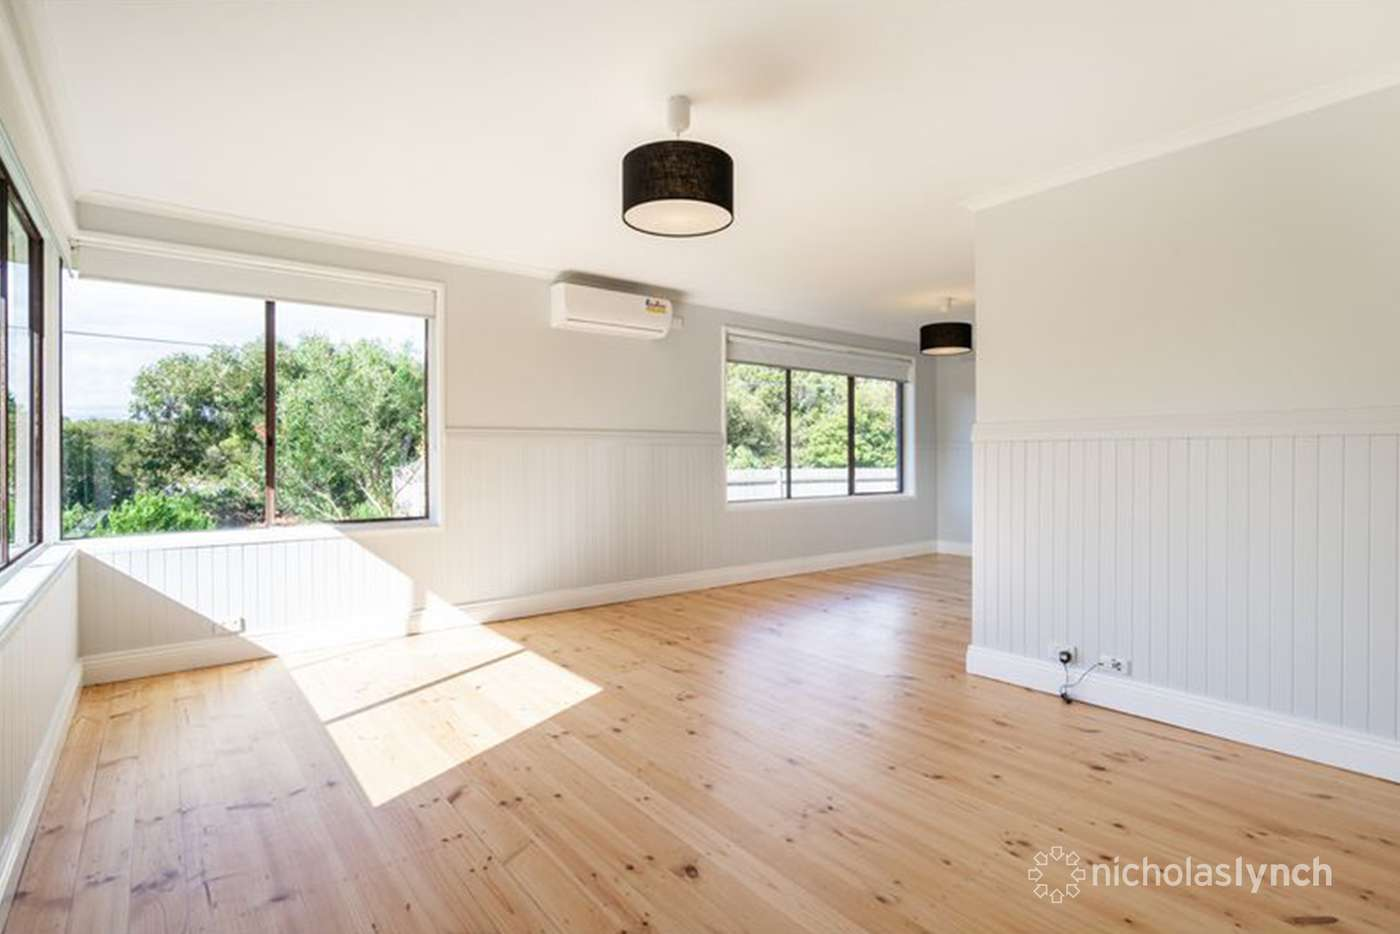 Fifth view of Homely house listing, 1 Goldborough Court, Frankston South VIC 3199